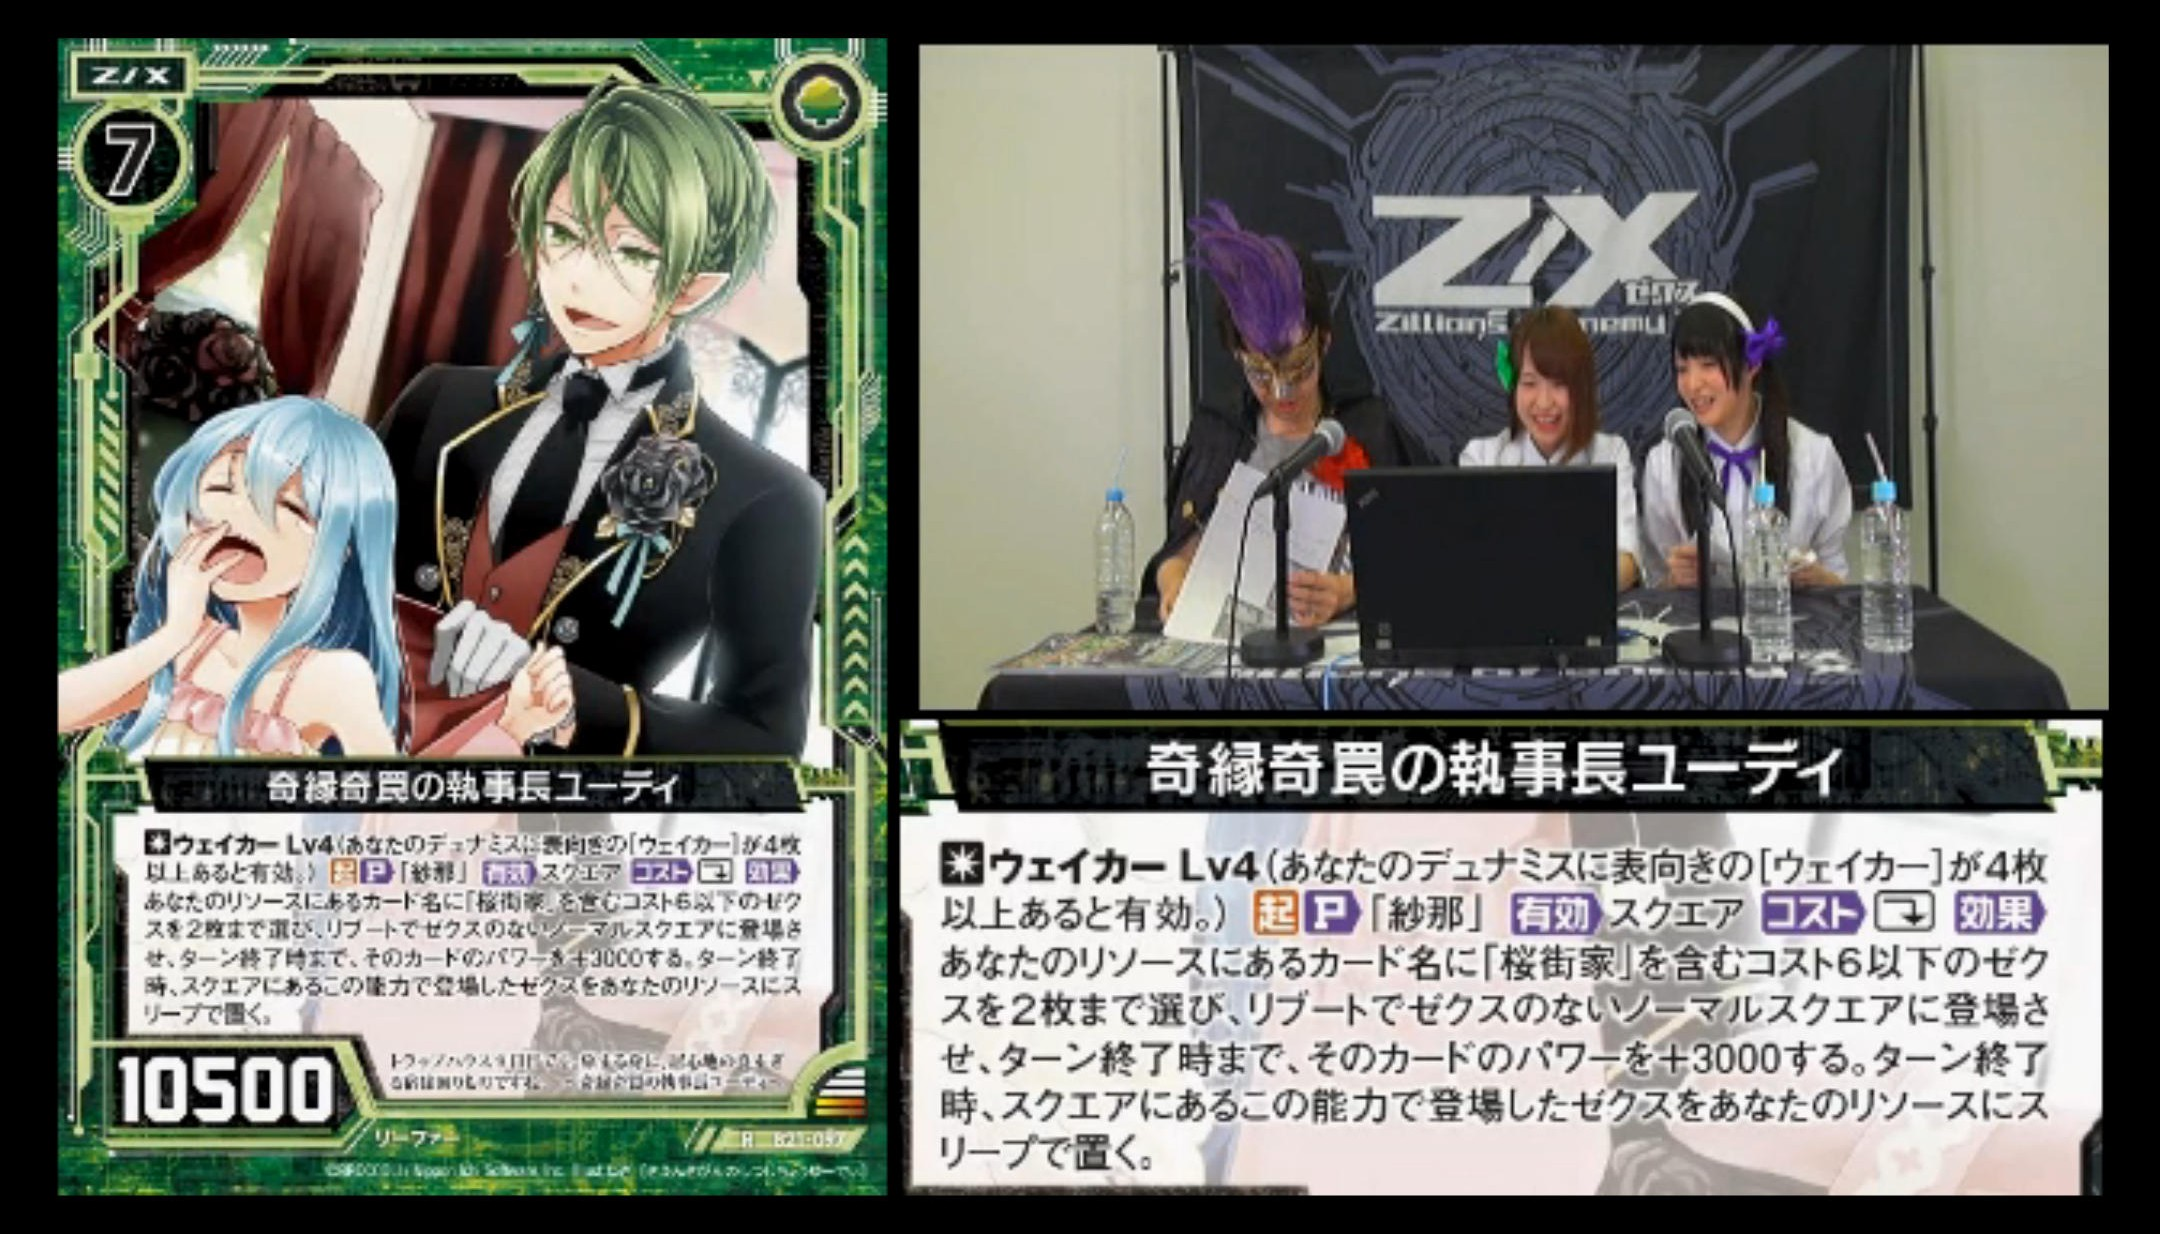 zx-ignition-broadcast-170531-022.jpg